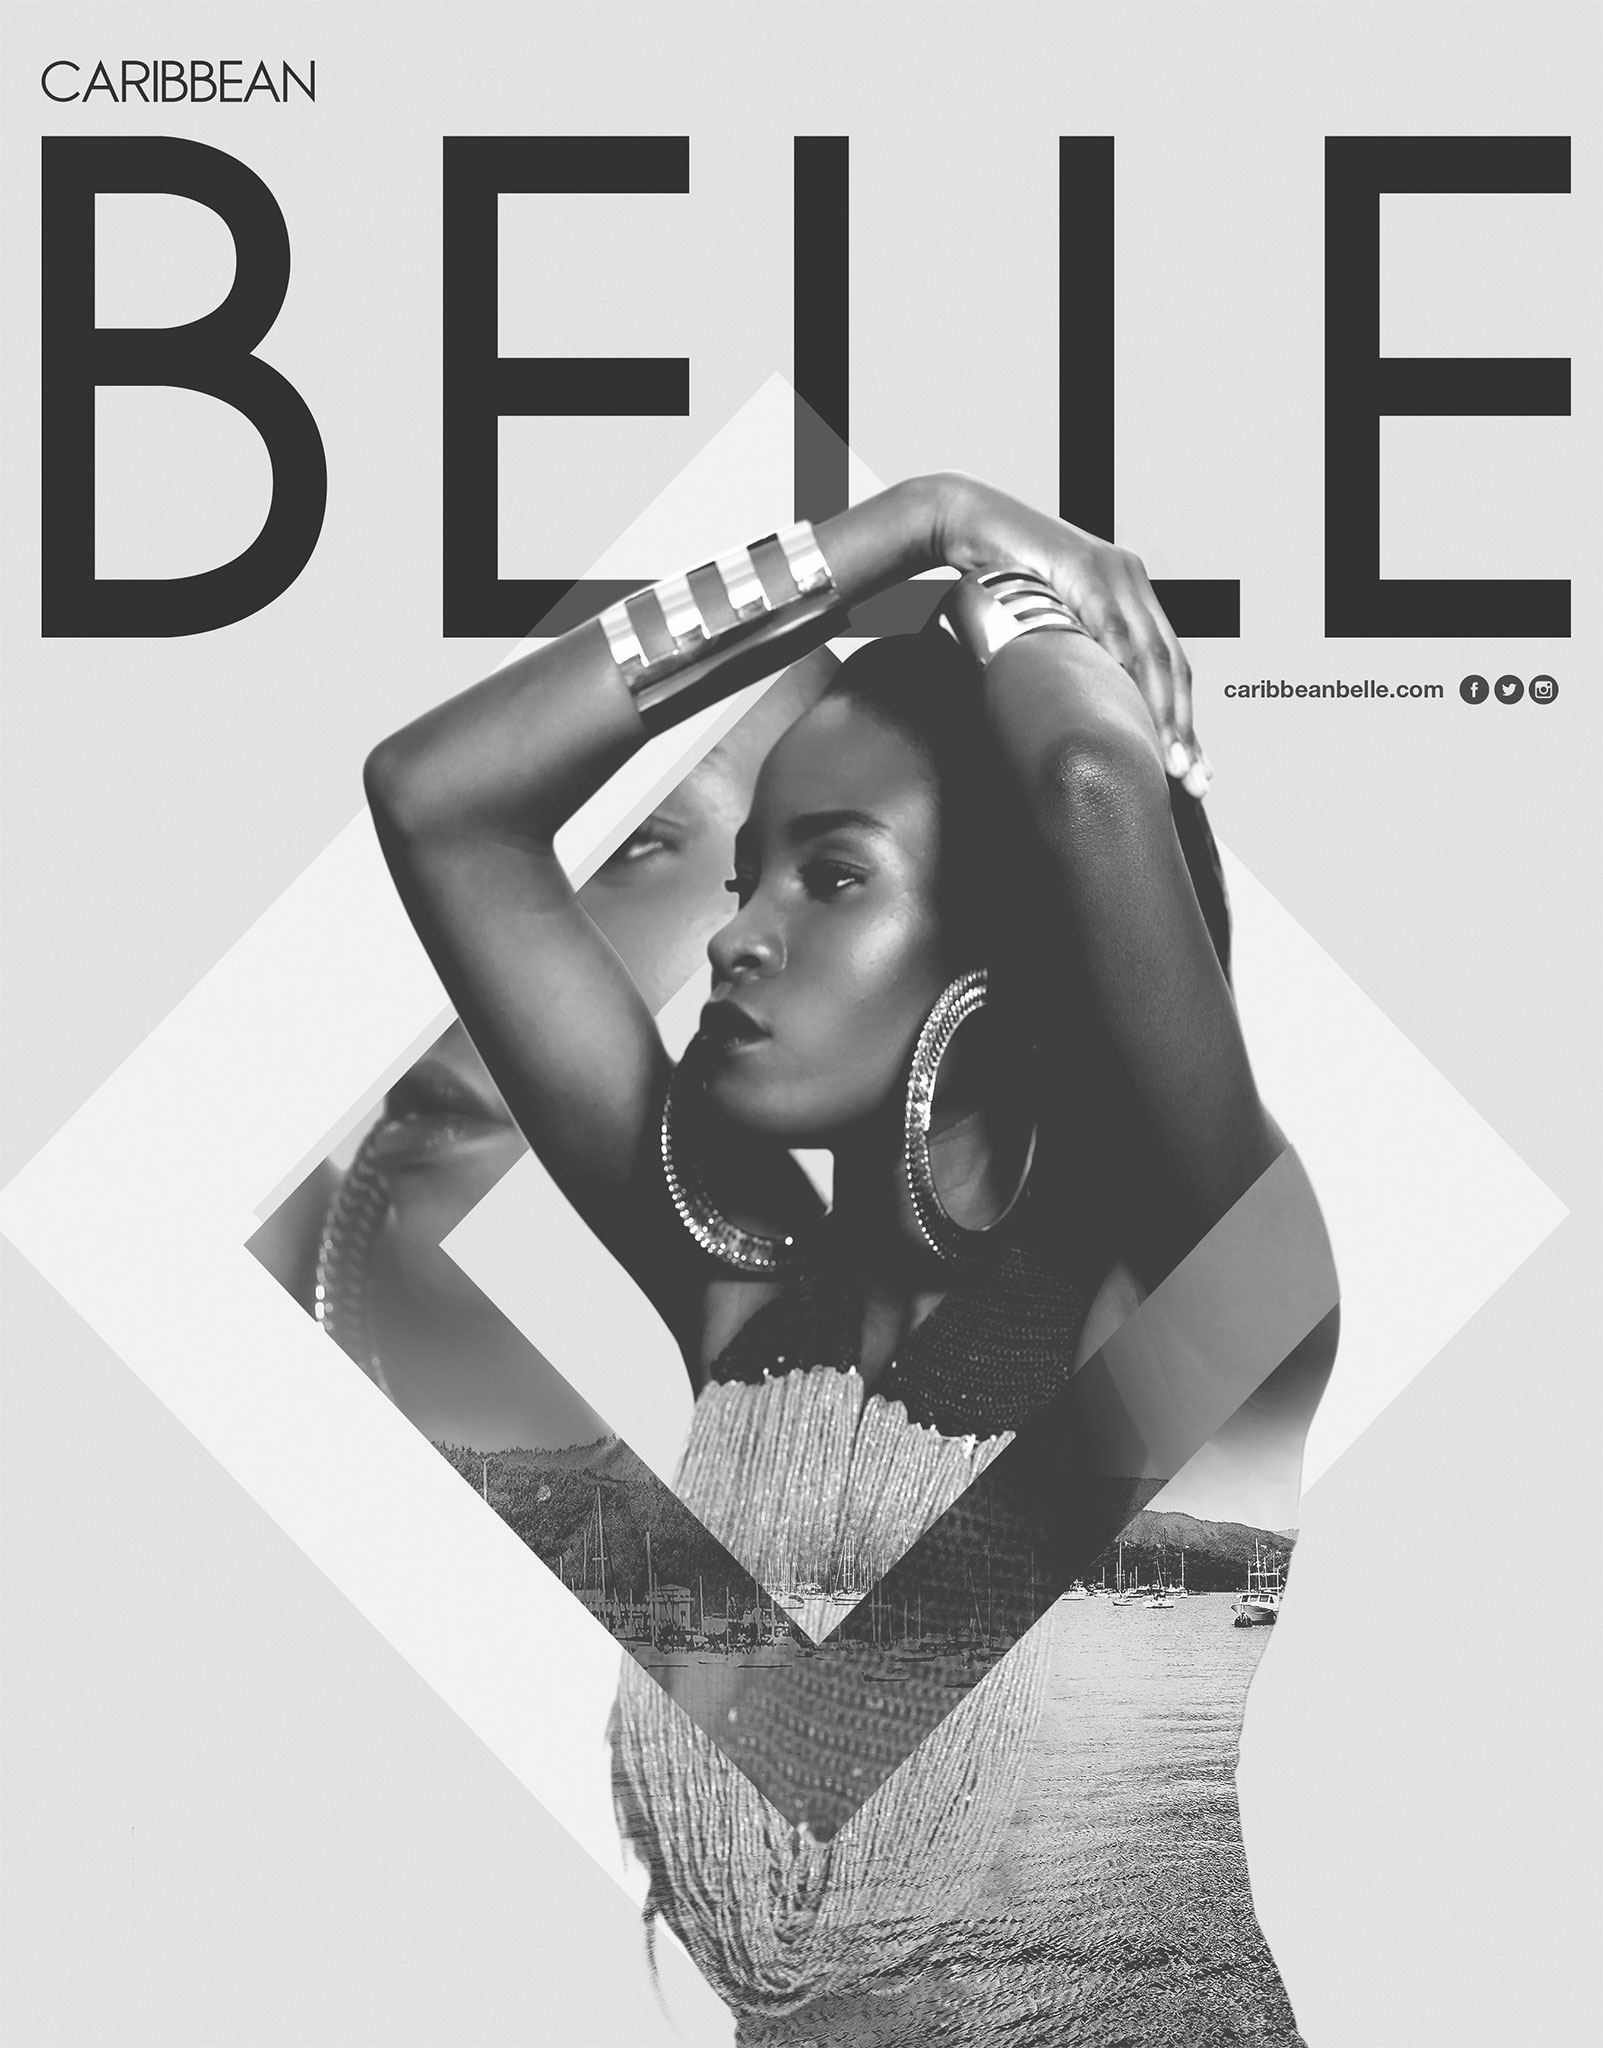 Caribbean BELLE - Volume 9, Issue 2